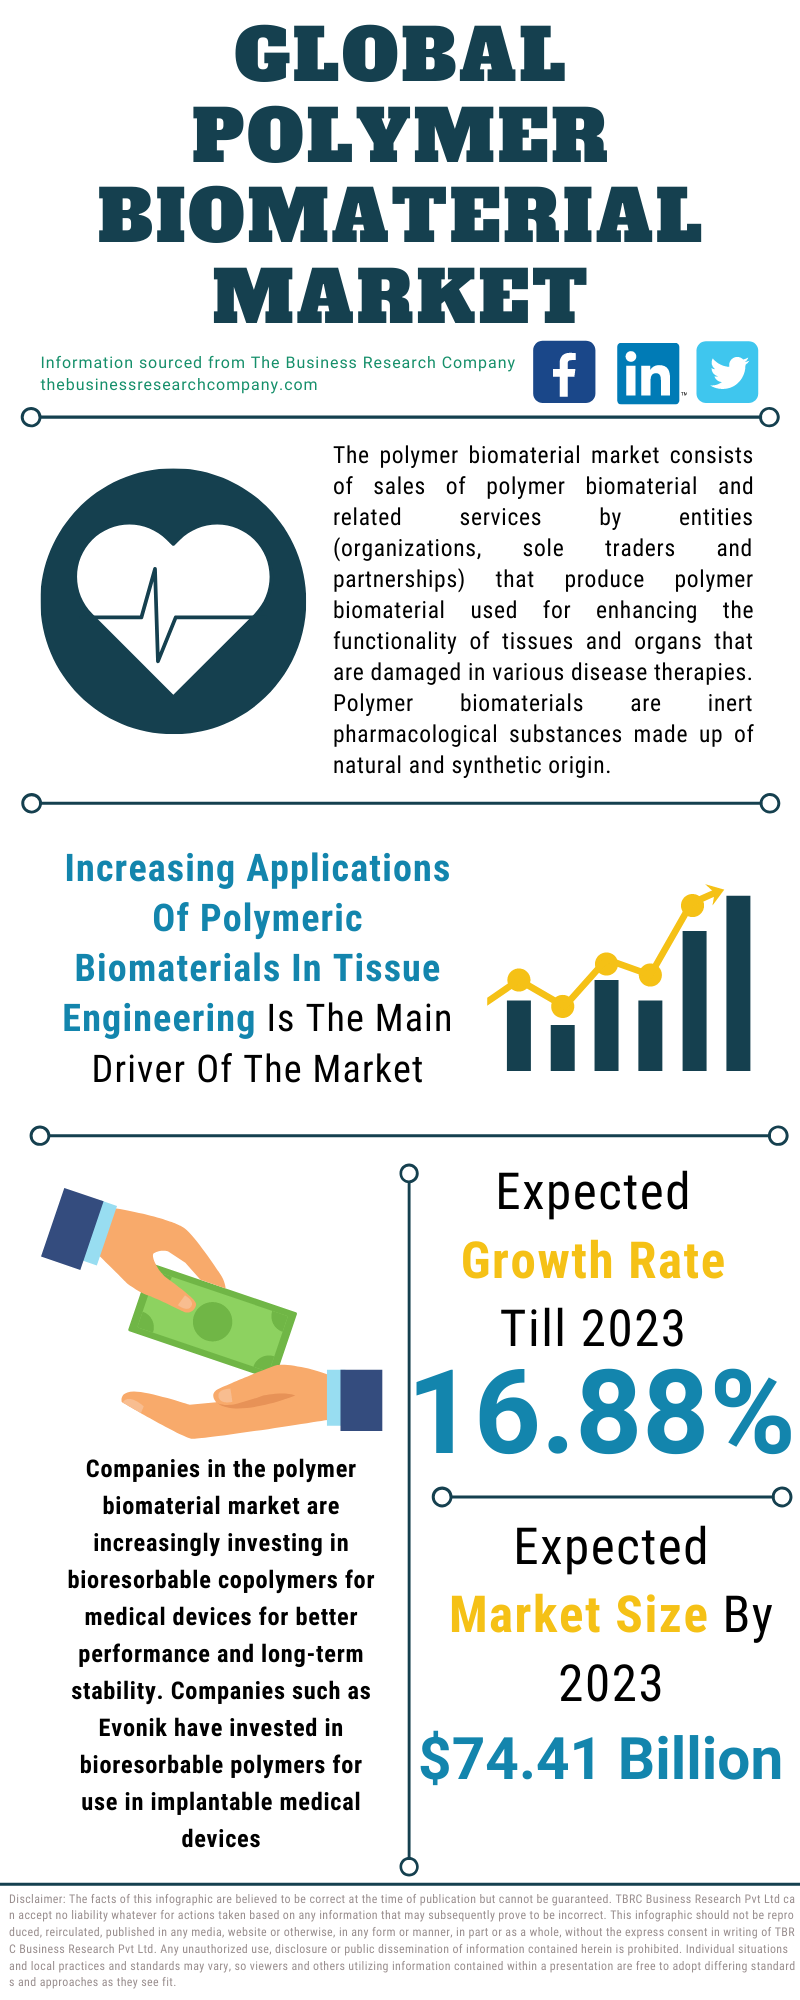 Polymer Biomaterial Market